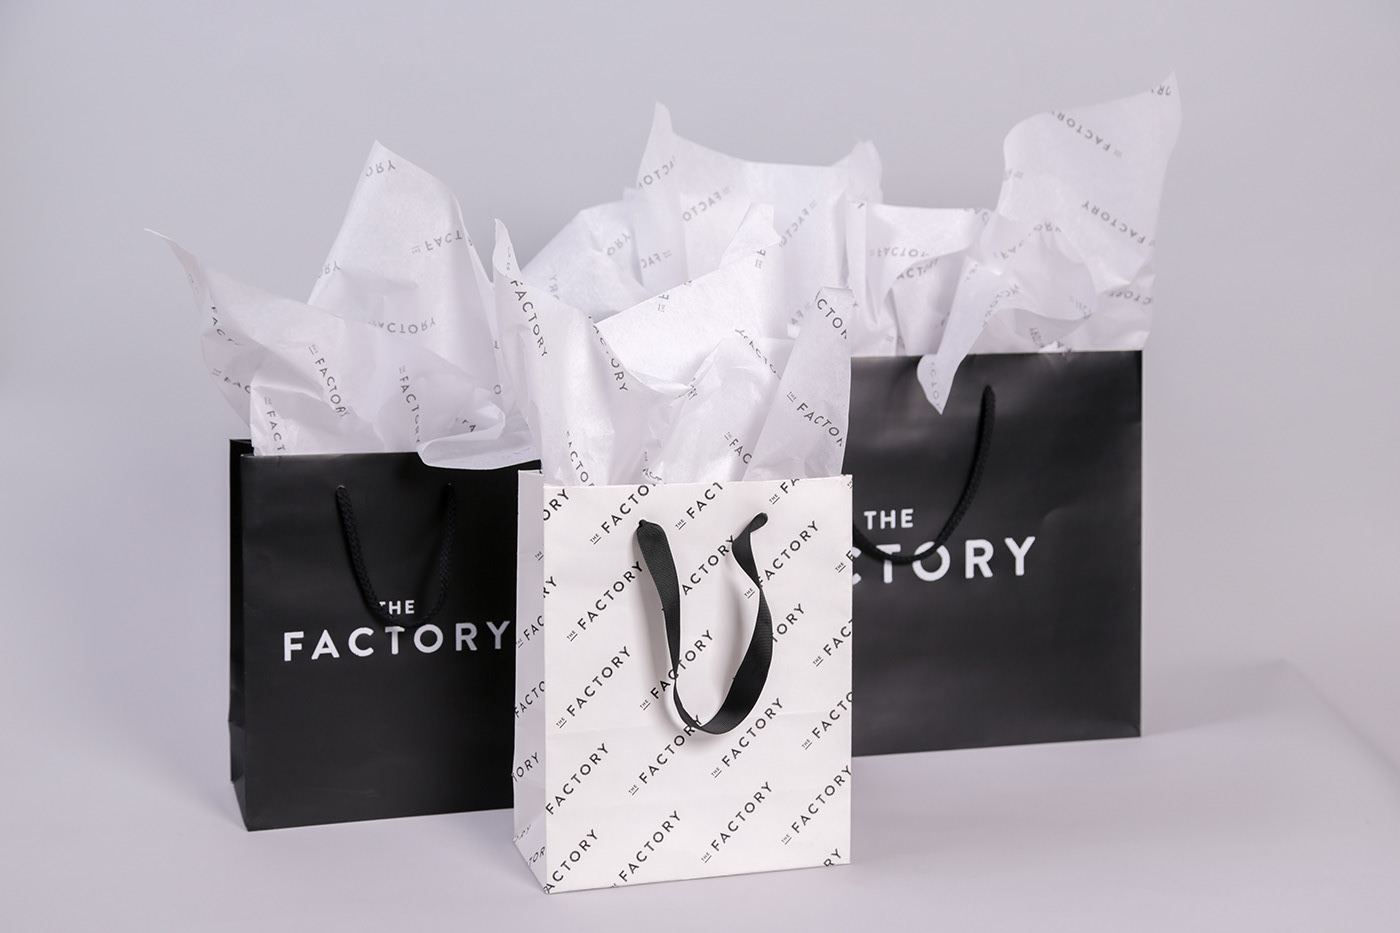 Shopping Bags with logos and branded tissue paper for The Factory